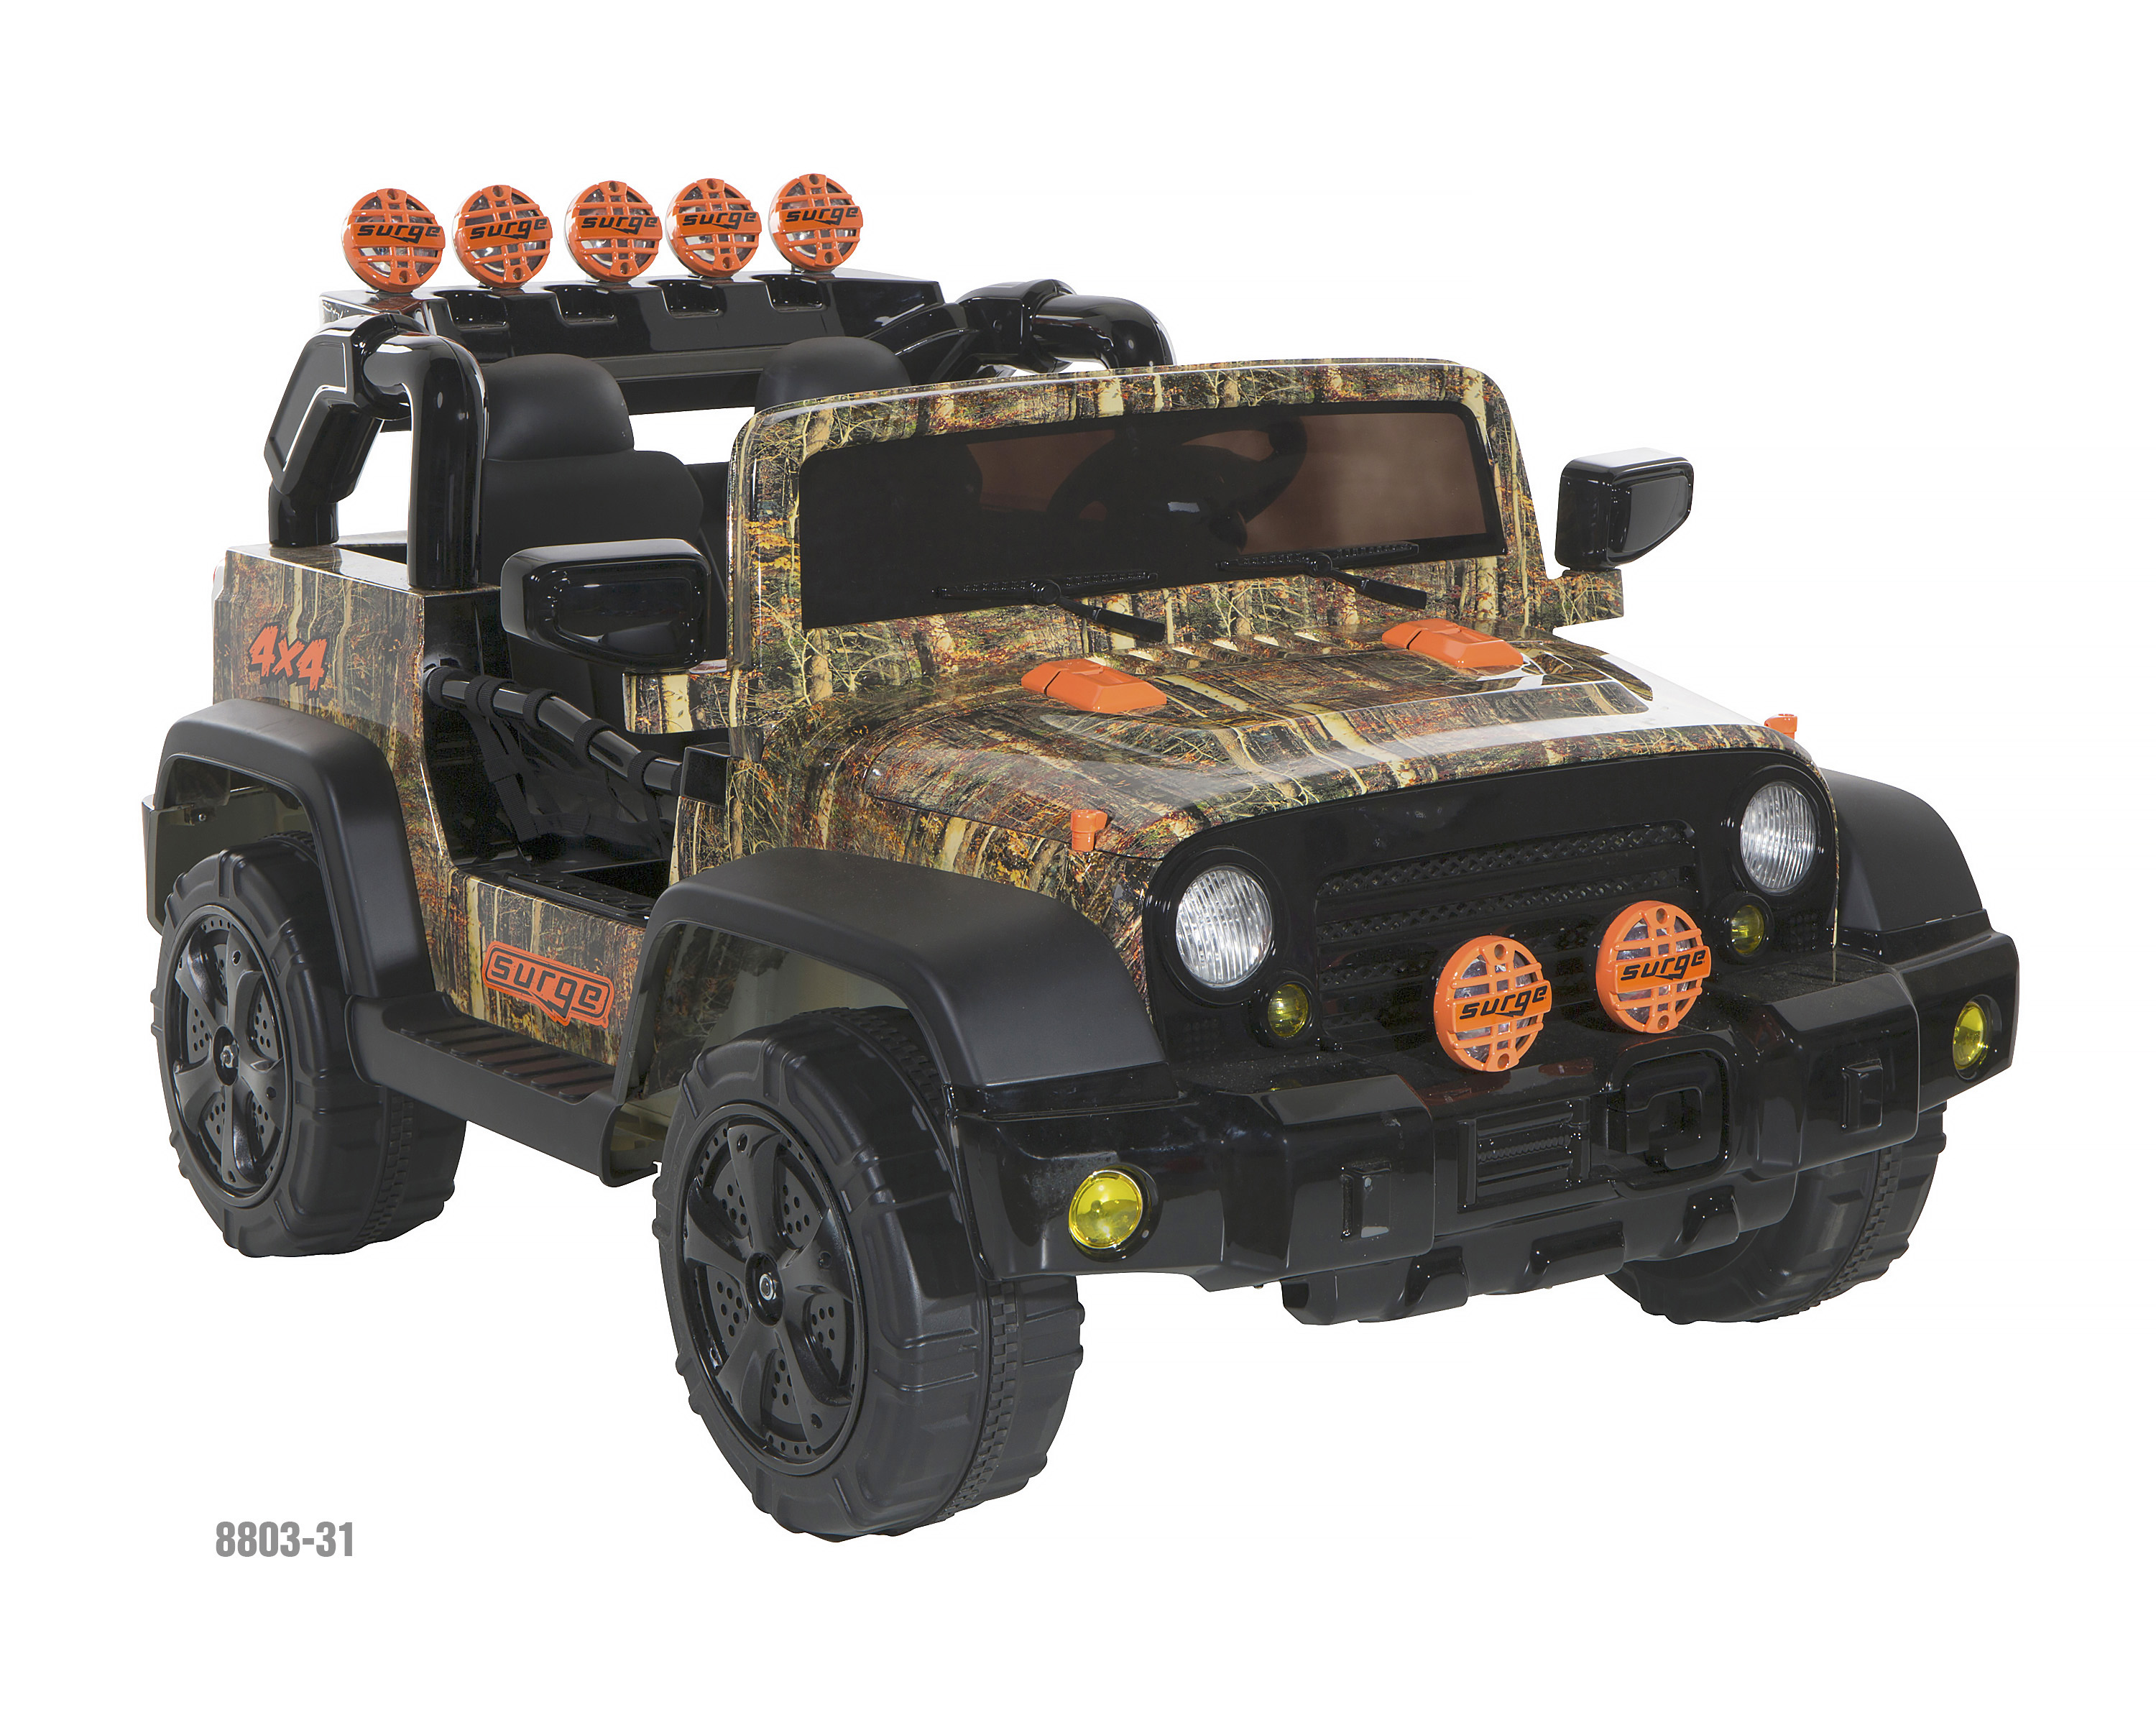 Surge 12V Camo 4X4 battery operated ride-on toy, model number 8803-31